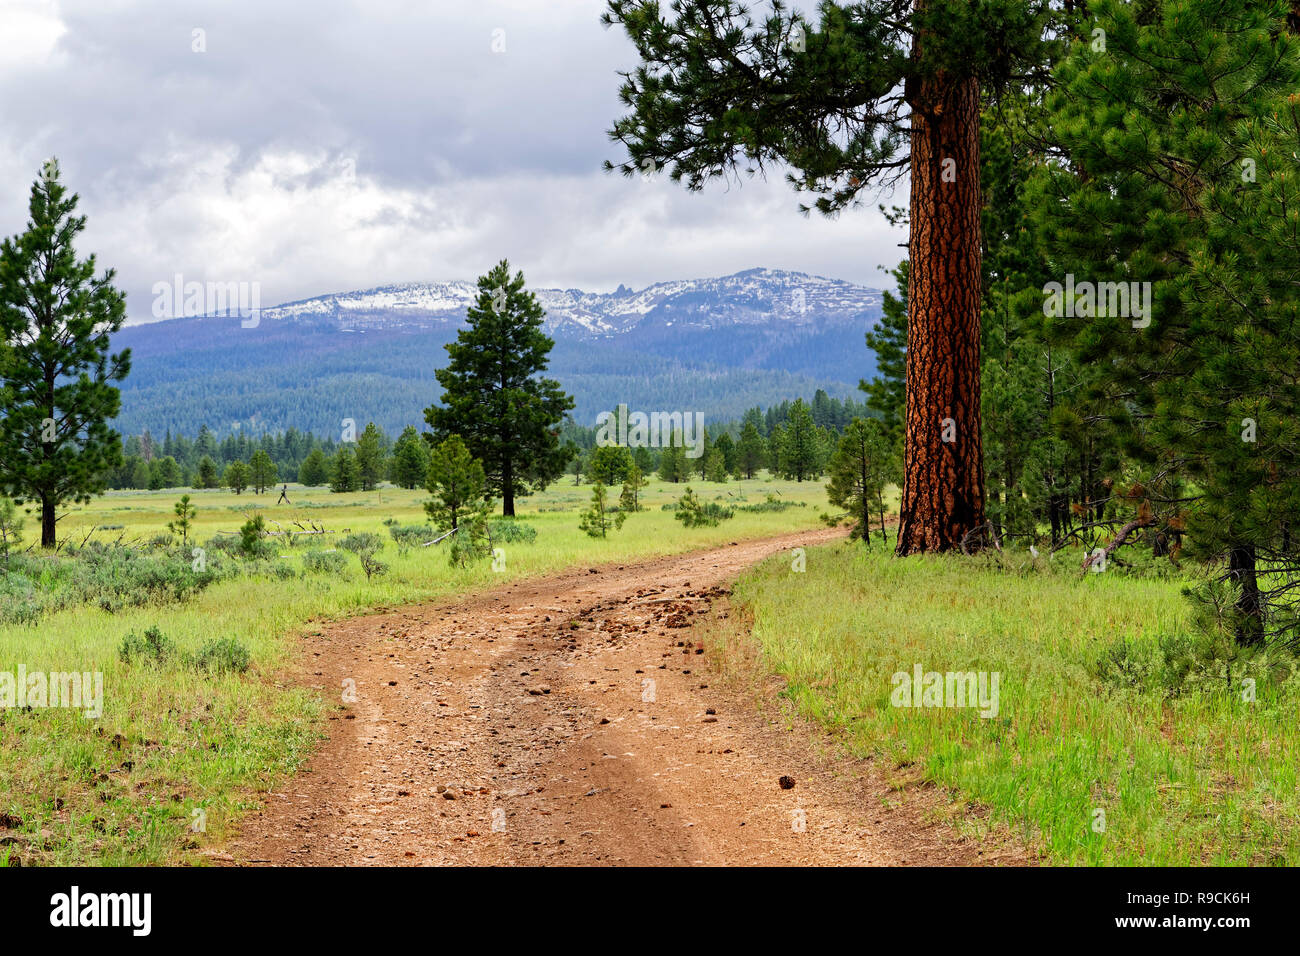 42,894.03540 red dirt backcountry public road on edge of ponderosa pine forest & lush green Logan's Prairie, Prairie City, Oregon, USA - Stock Image